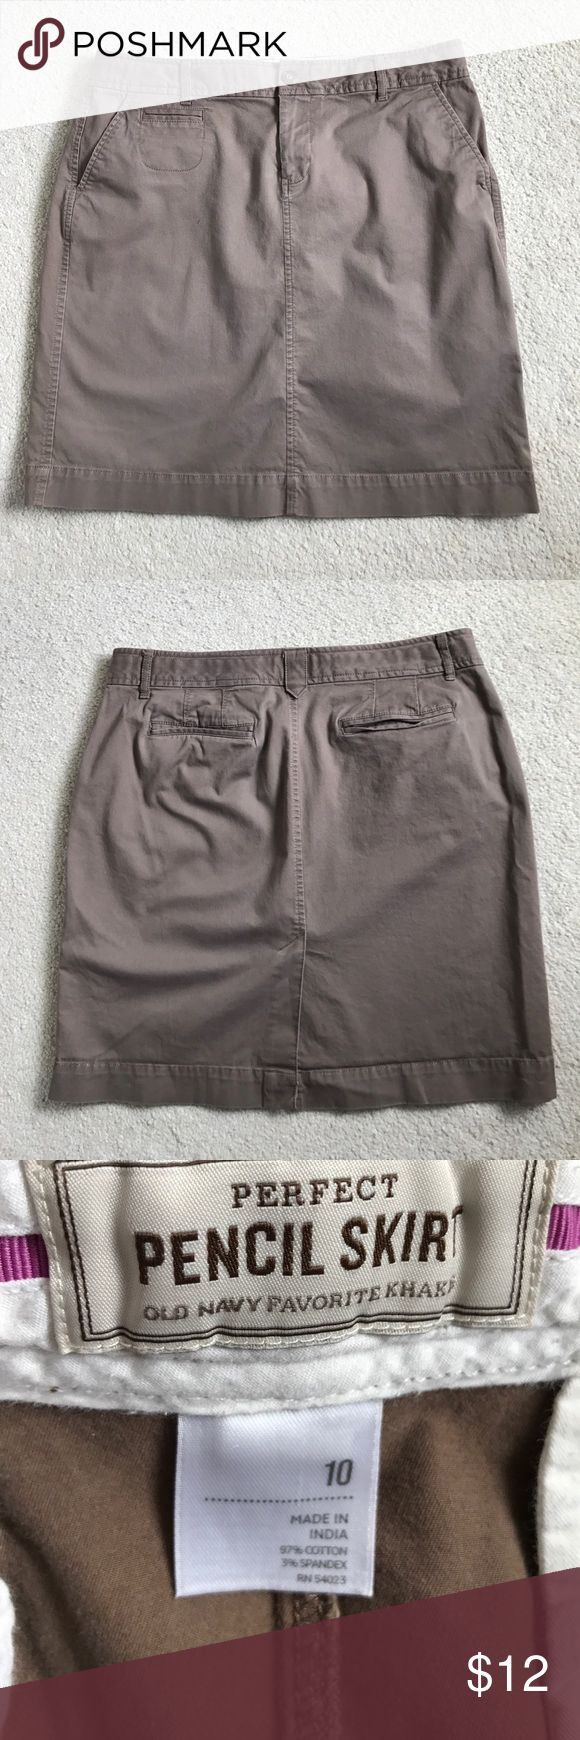 Old Navy pencil skirt. Size 10 Light brown pencil skirt in a chino khaki fabric. Side pockets and back pockets. Hits just above the knee on a woman about 5'5. Old Navy Skirts Pencil